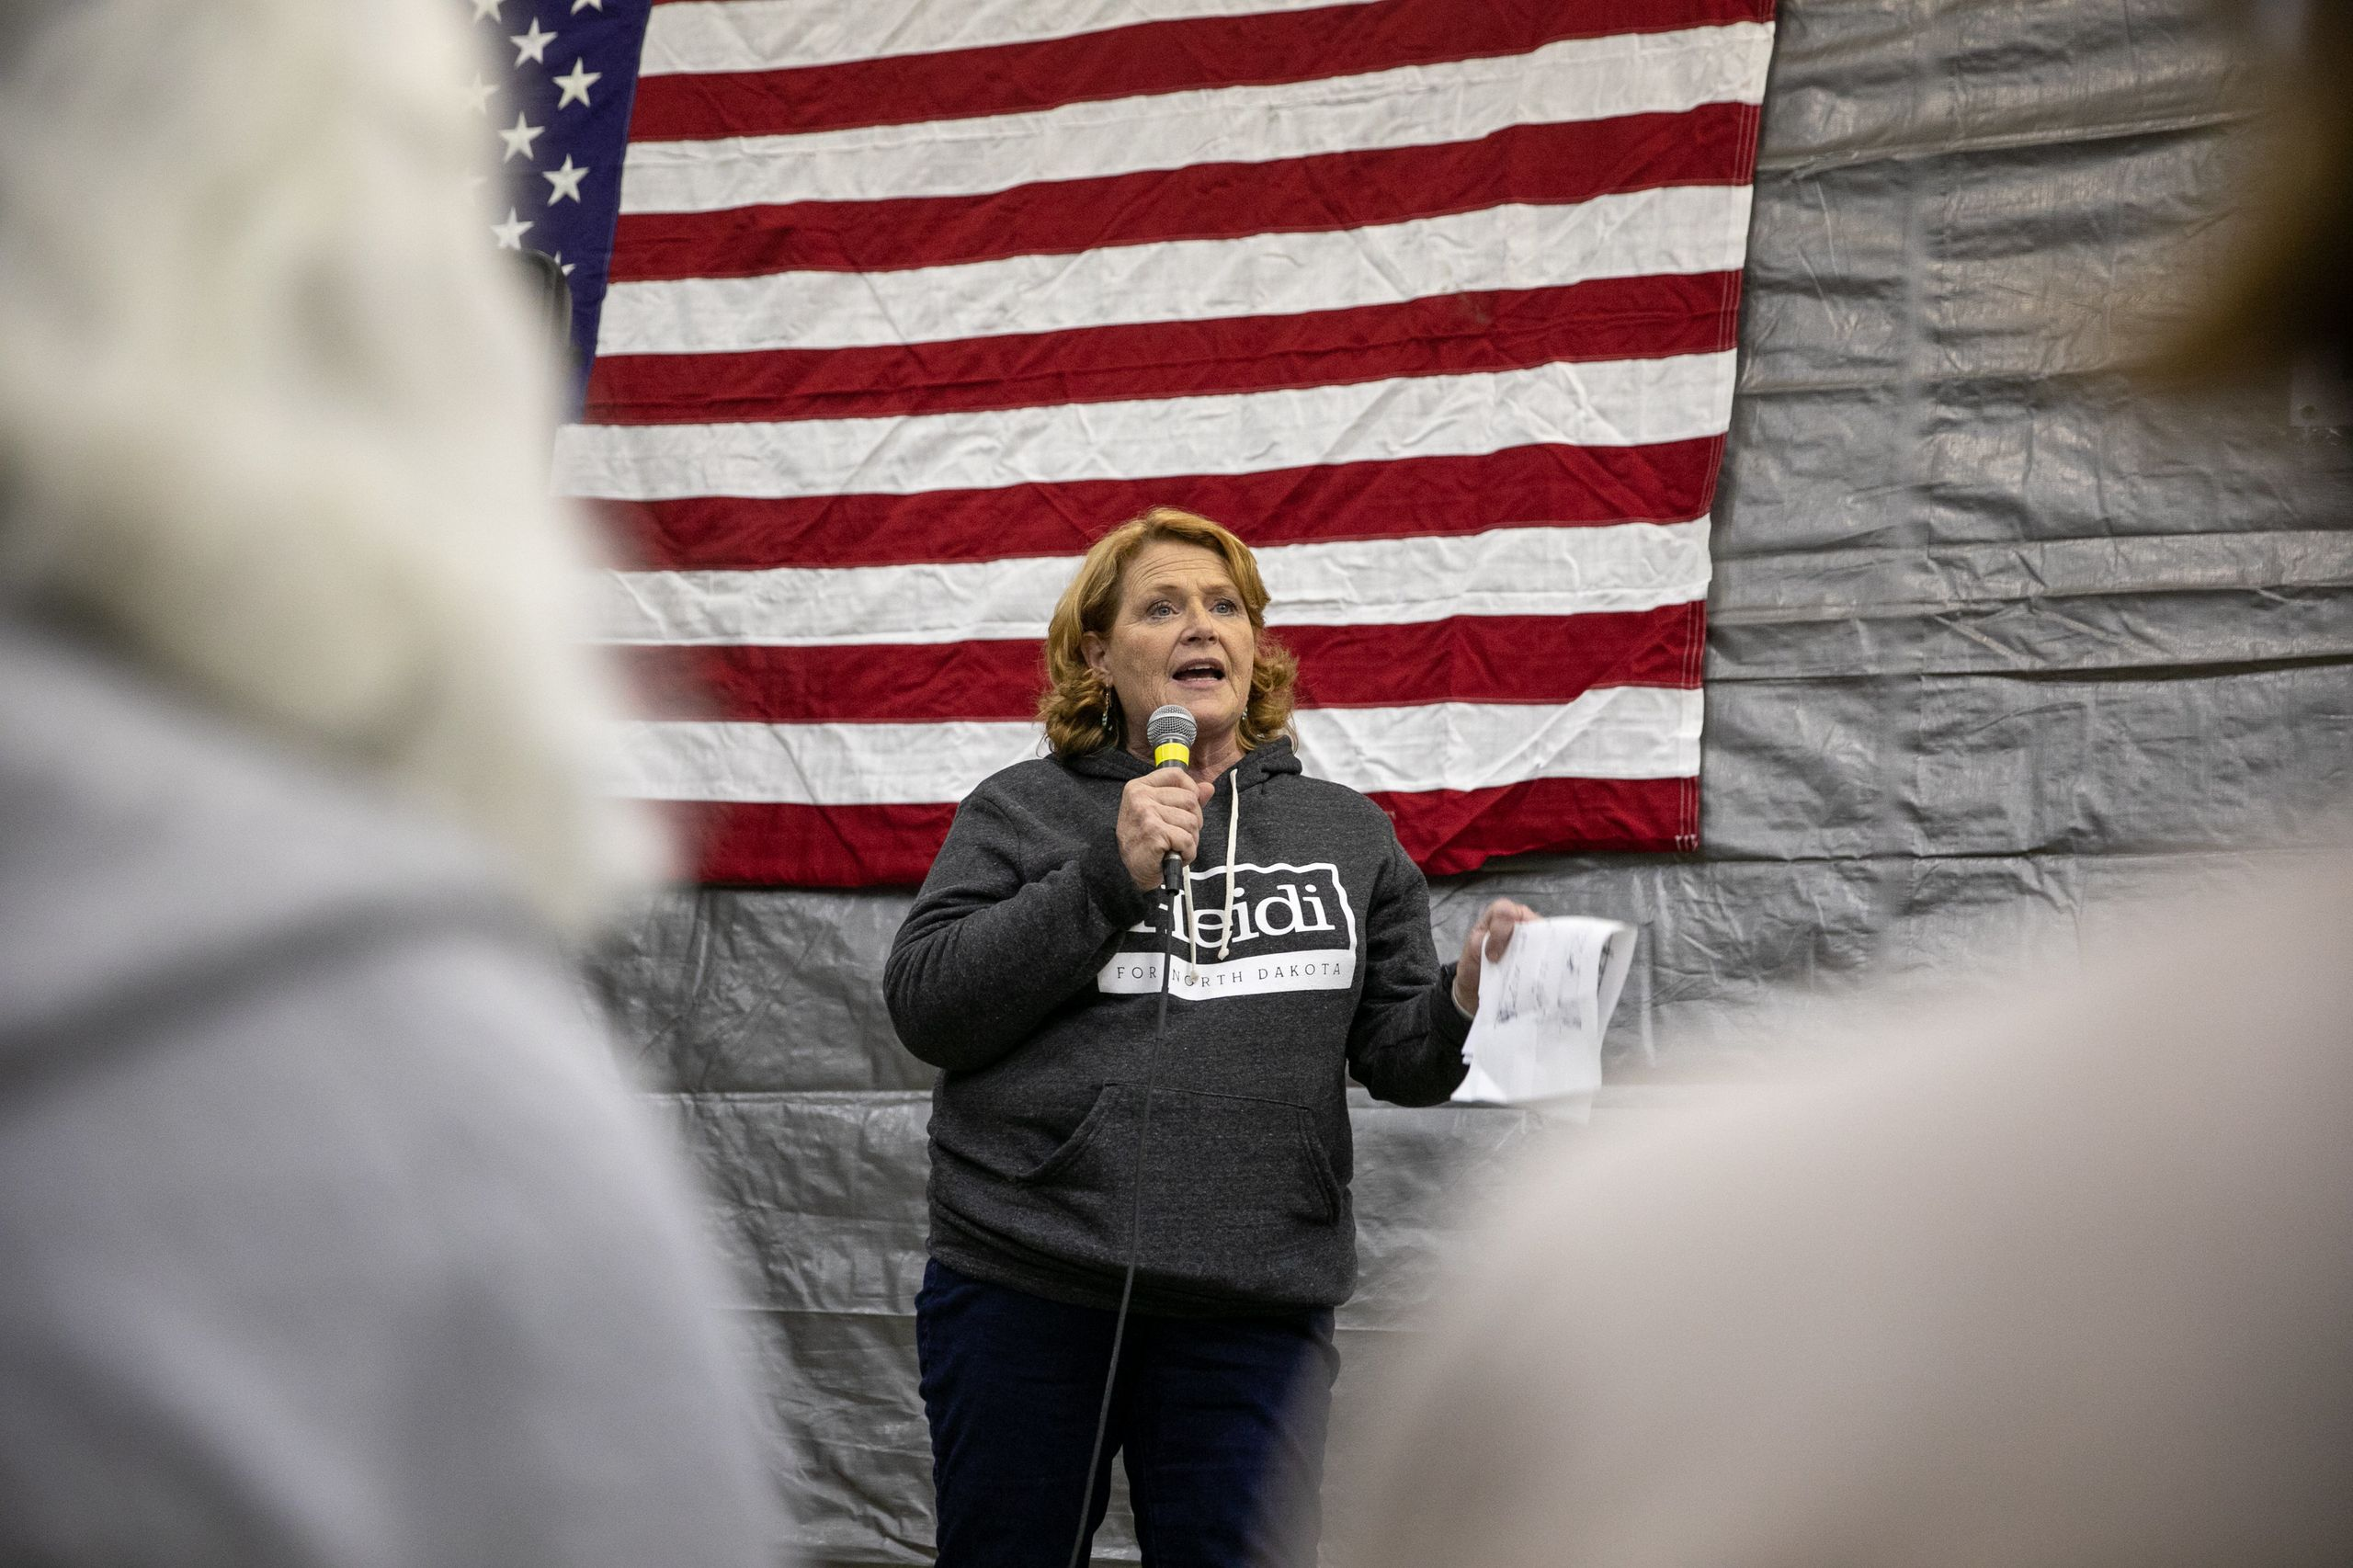 Heitkamp speaks to a packed house of supporters at a rally at Schmidt's Shop in Wyndmere, North Dakota, on Sunday.